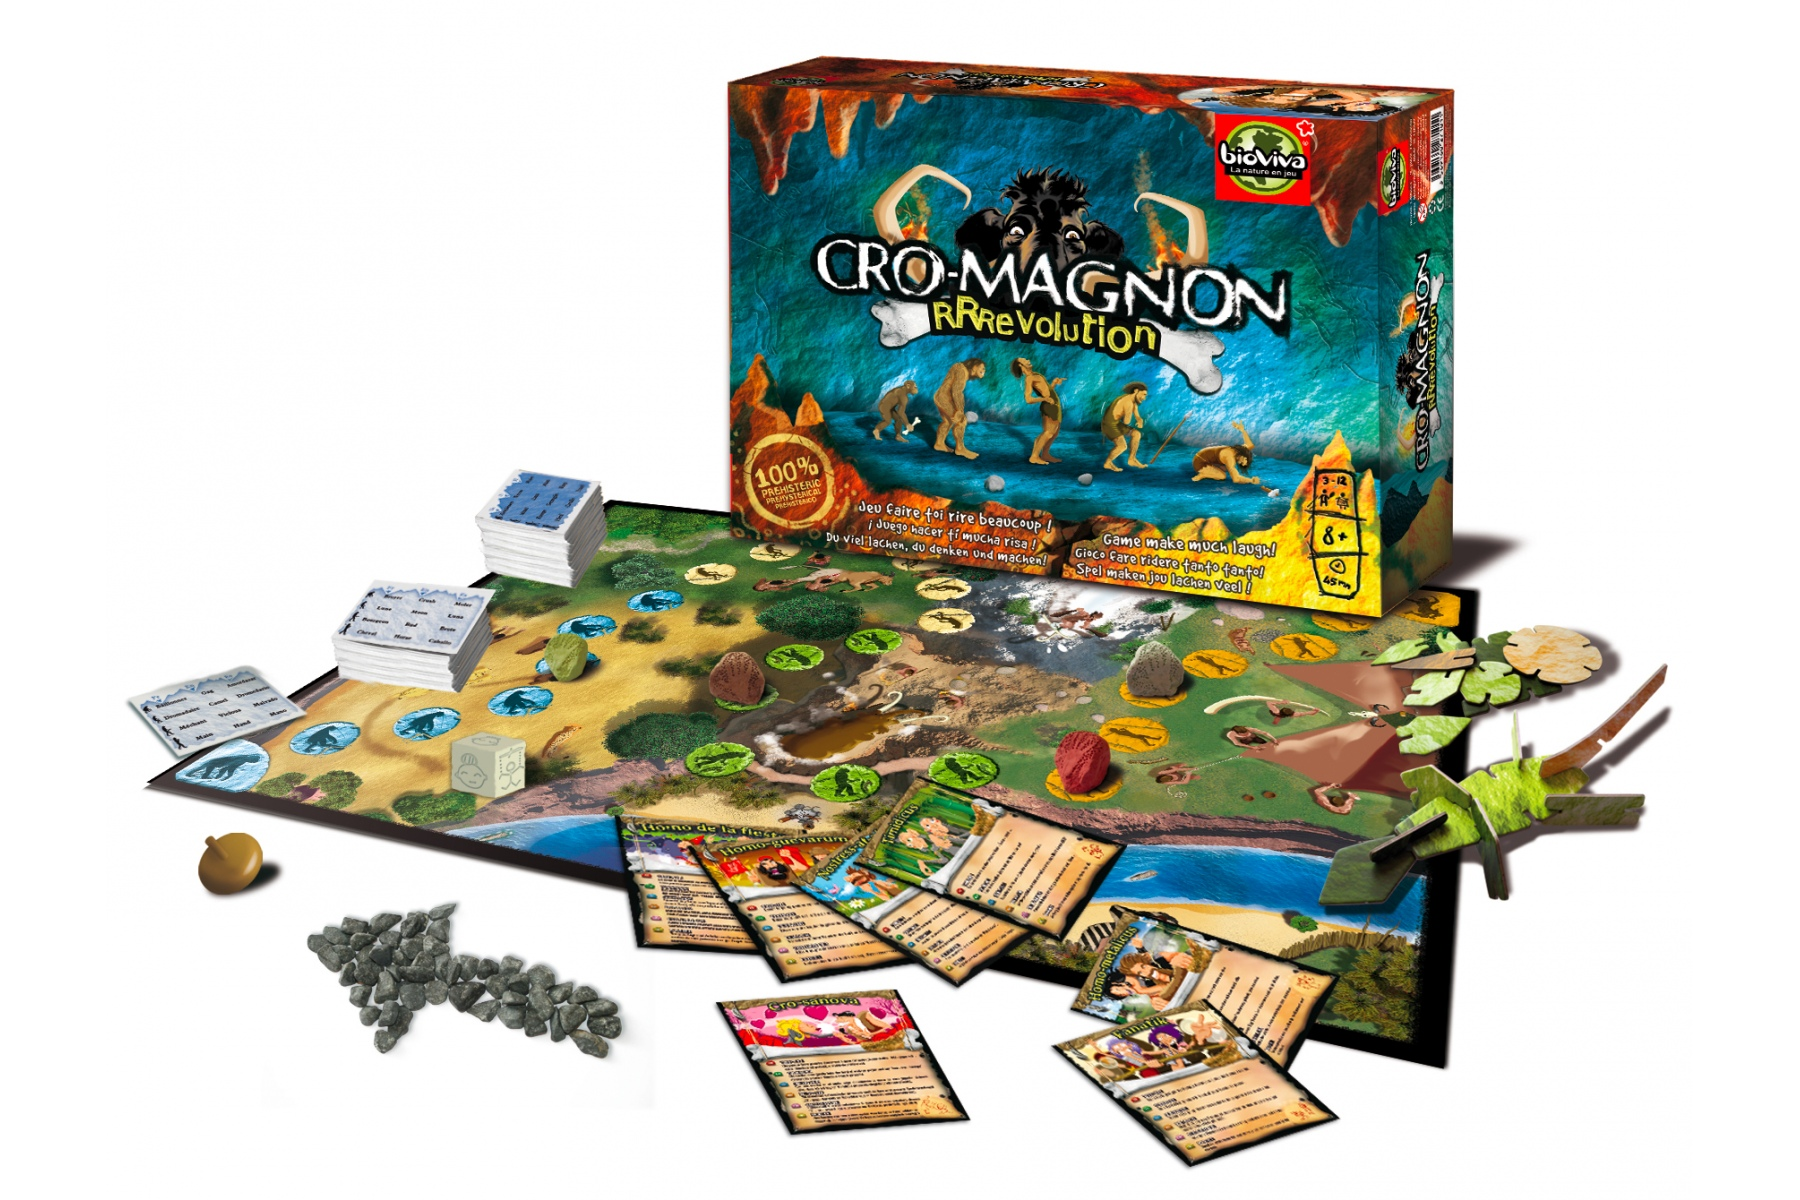 Localisation of the board game Cro-magnon""""